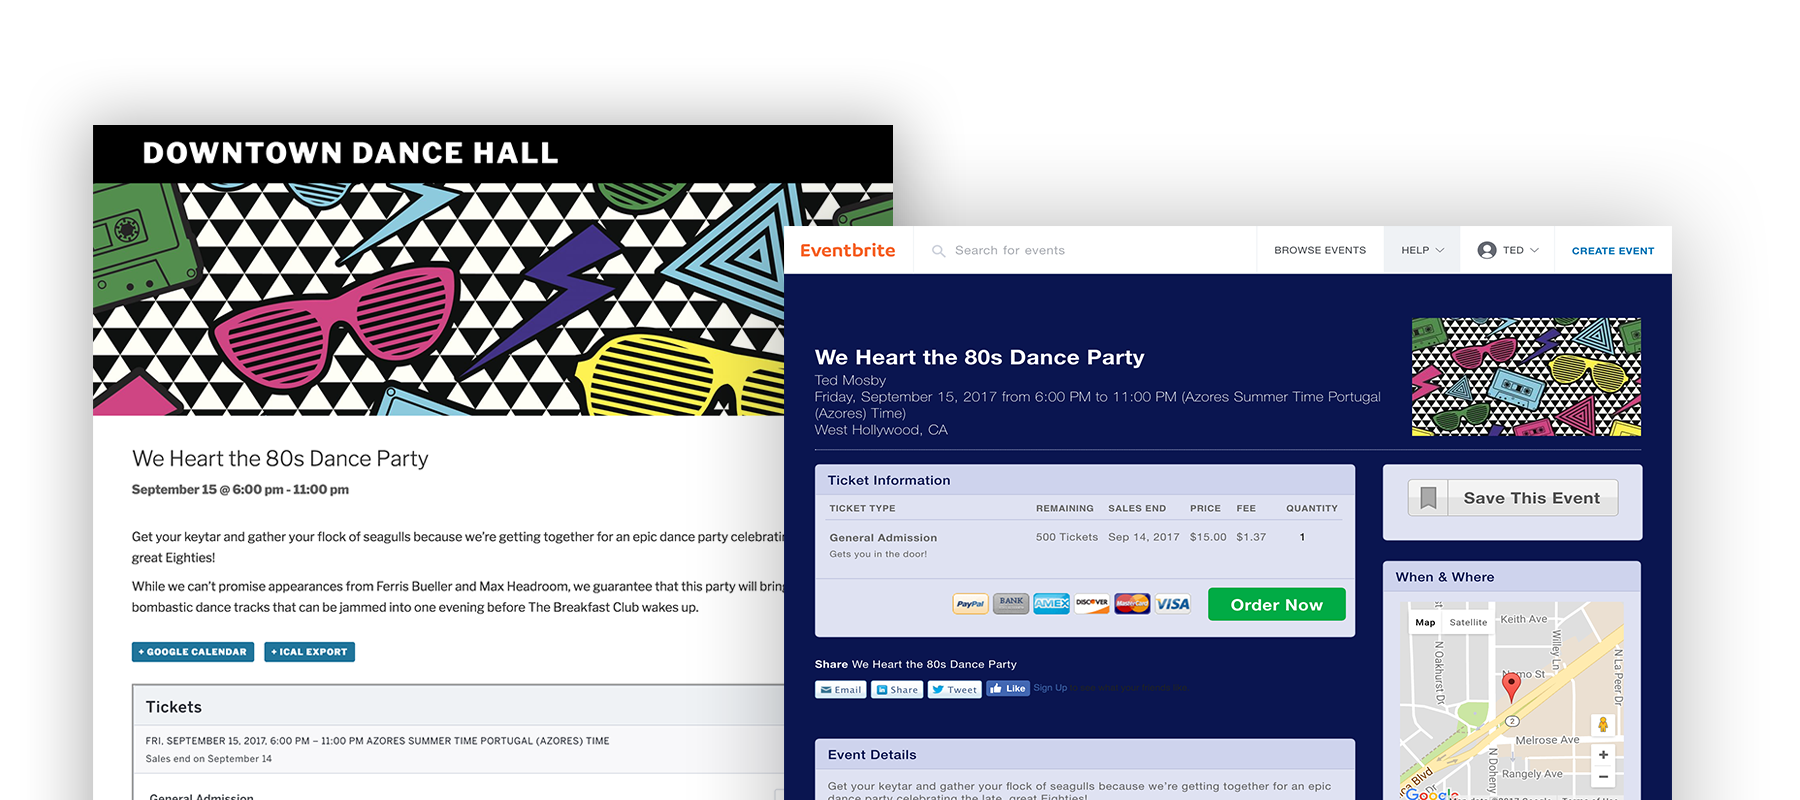 our eventbrite tickets and the events calendar plugins for wordpress make it easy to create events on your own self hosted site and instantly publish them